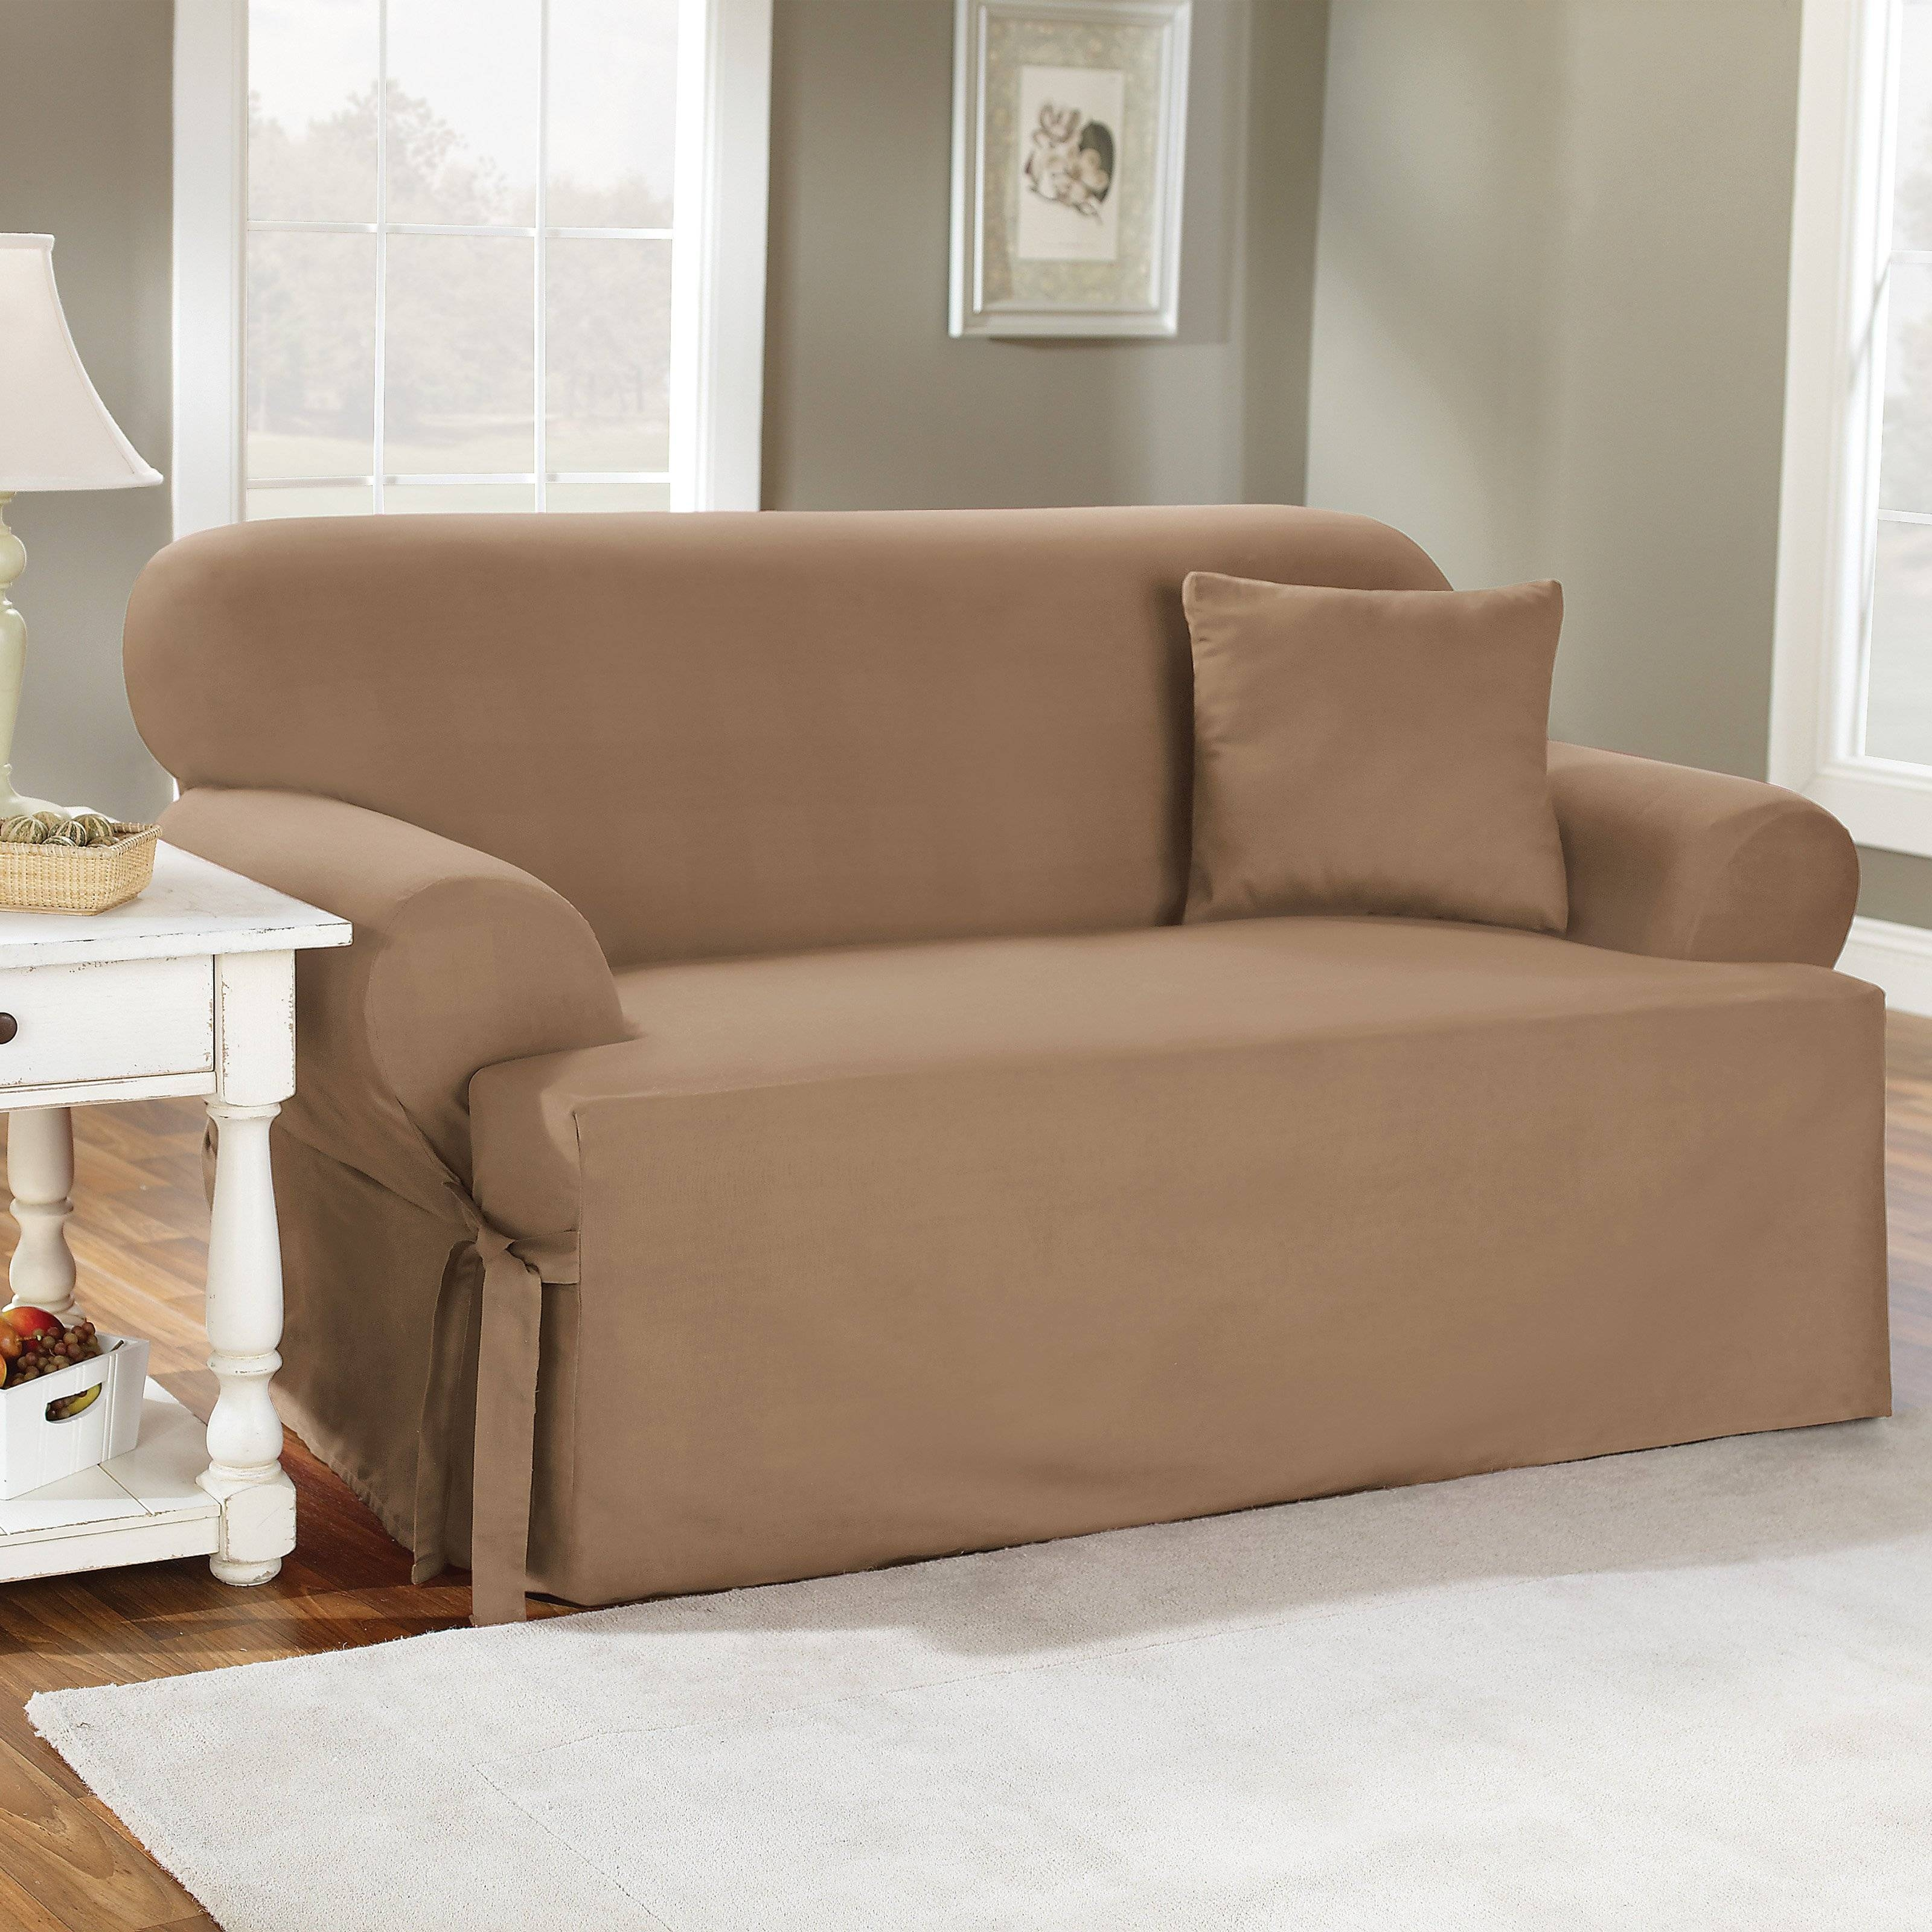 Sure Fit Cotton Duck T-Cushion Sofa Slipcover | Hayneedle in Sleeper Sofa Slipcovers (Image 11 of 15)